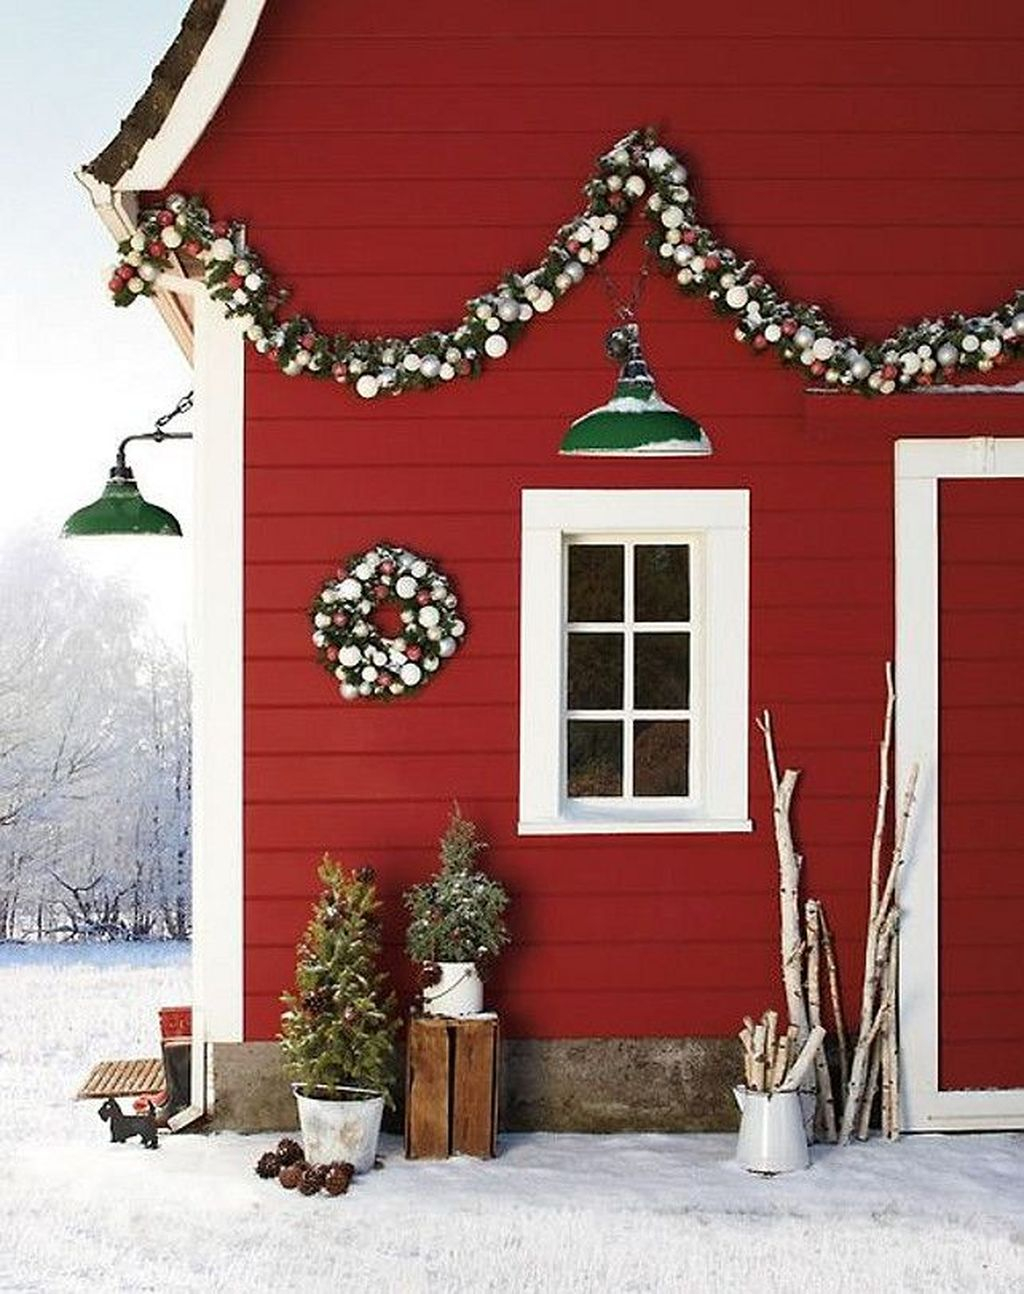 Wonderful Interior And Exterior Atmosphere Ideas For Christmas Décor To Copy07